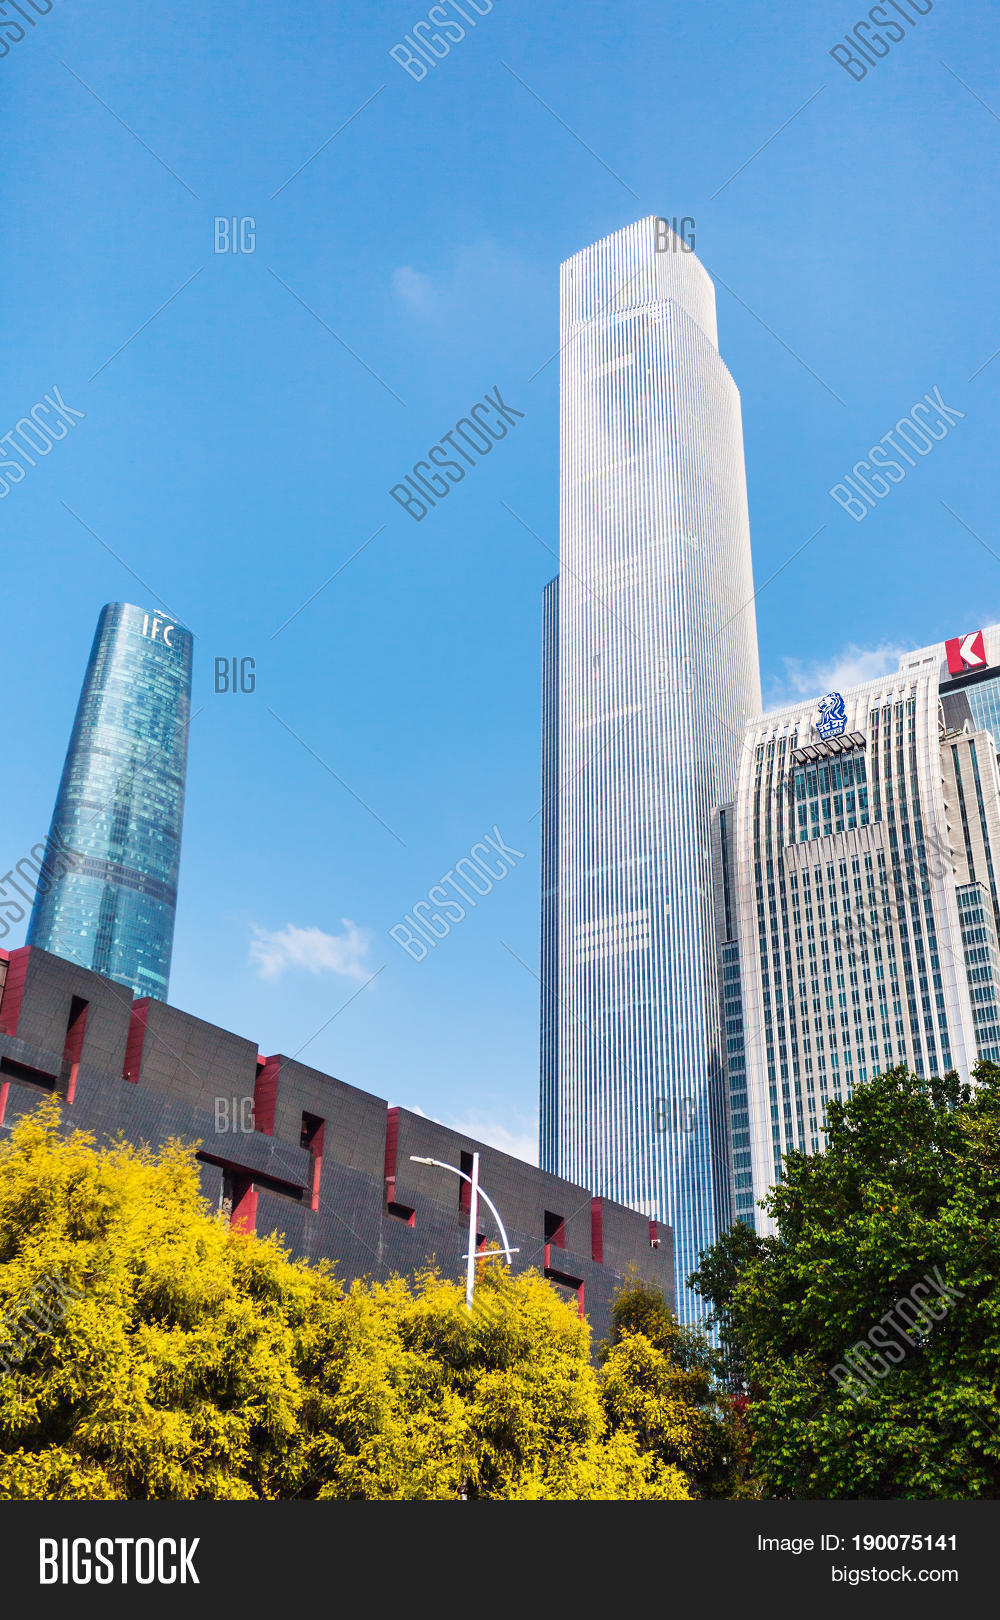 Tower Buildings Image & Photo (Free Trial) | Bigstock